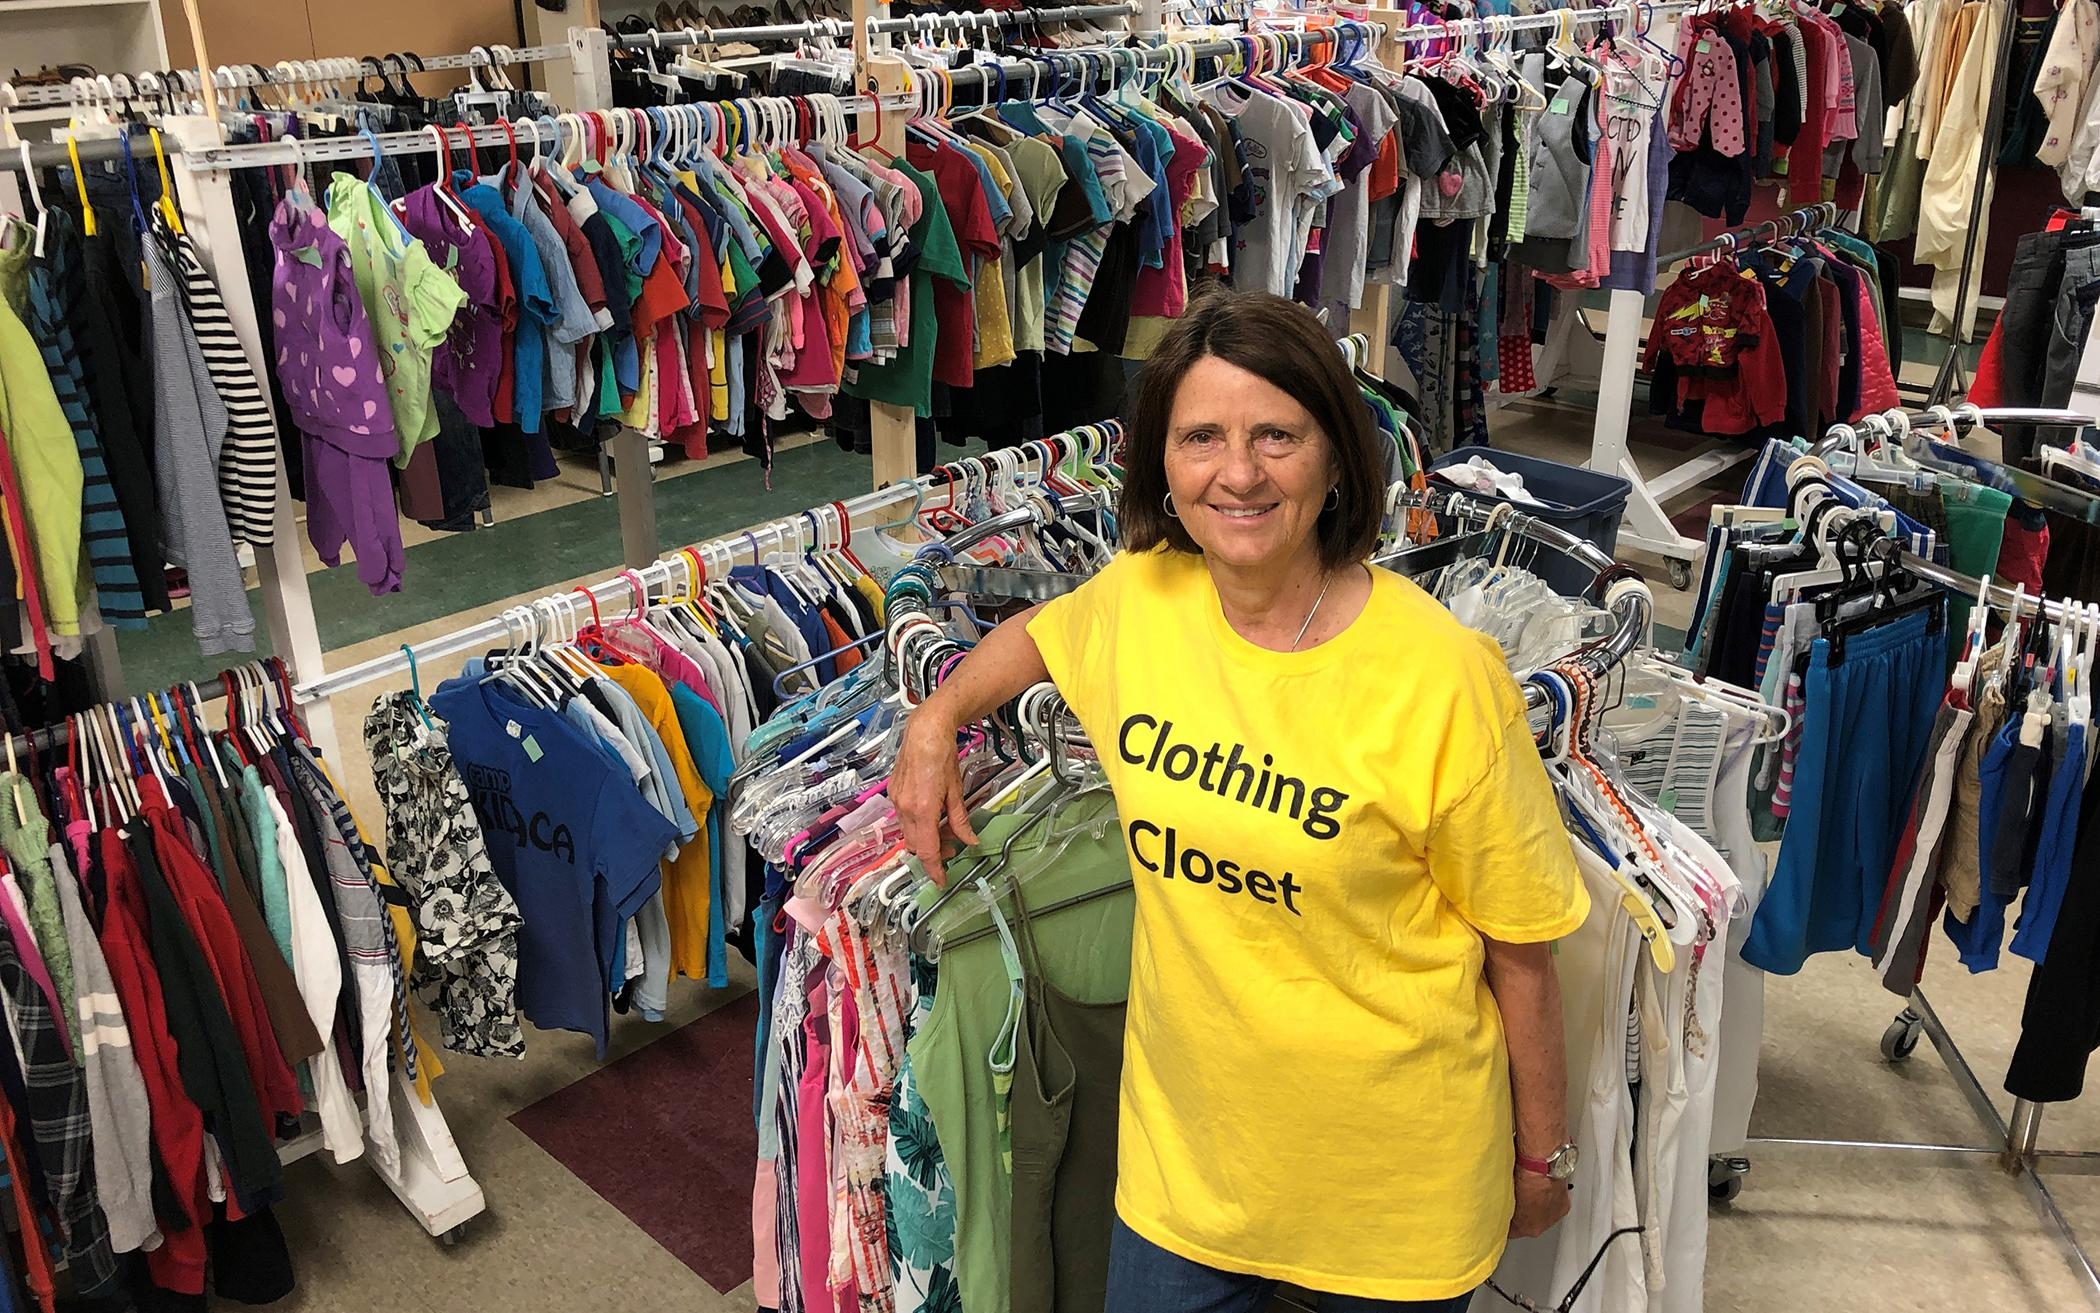 Church Celebrates 20 Years of Clothing Ministry